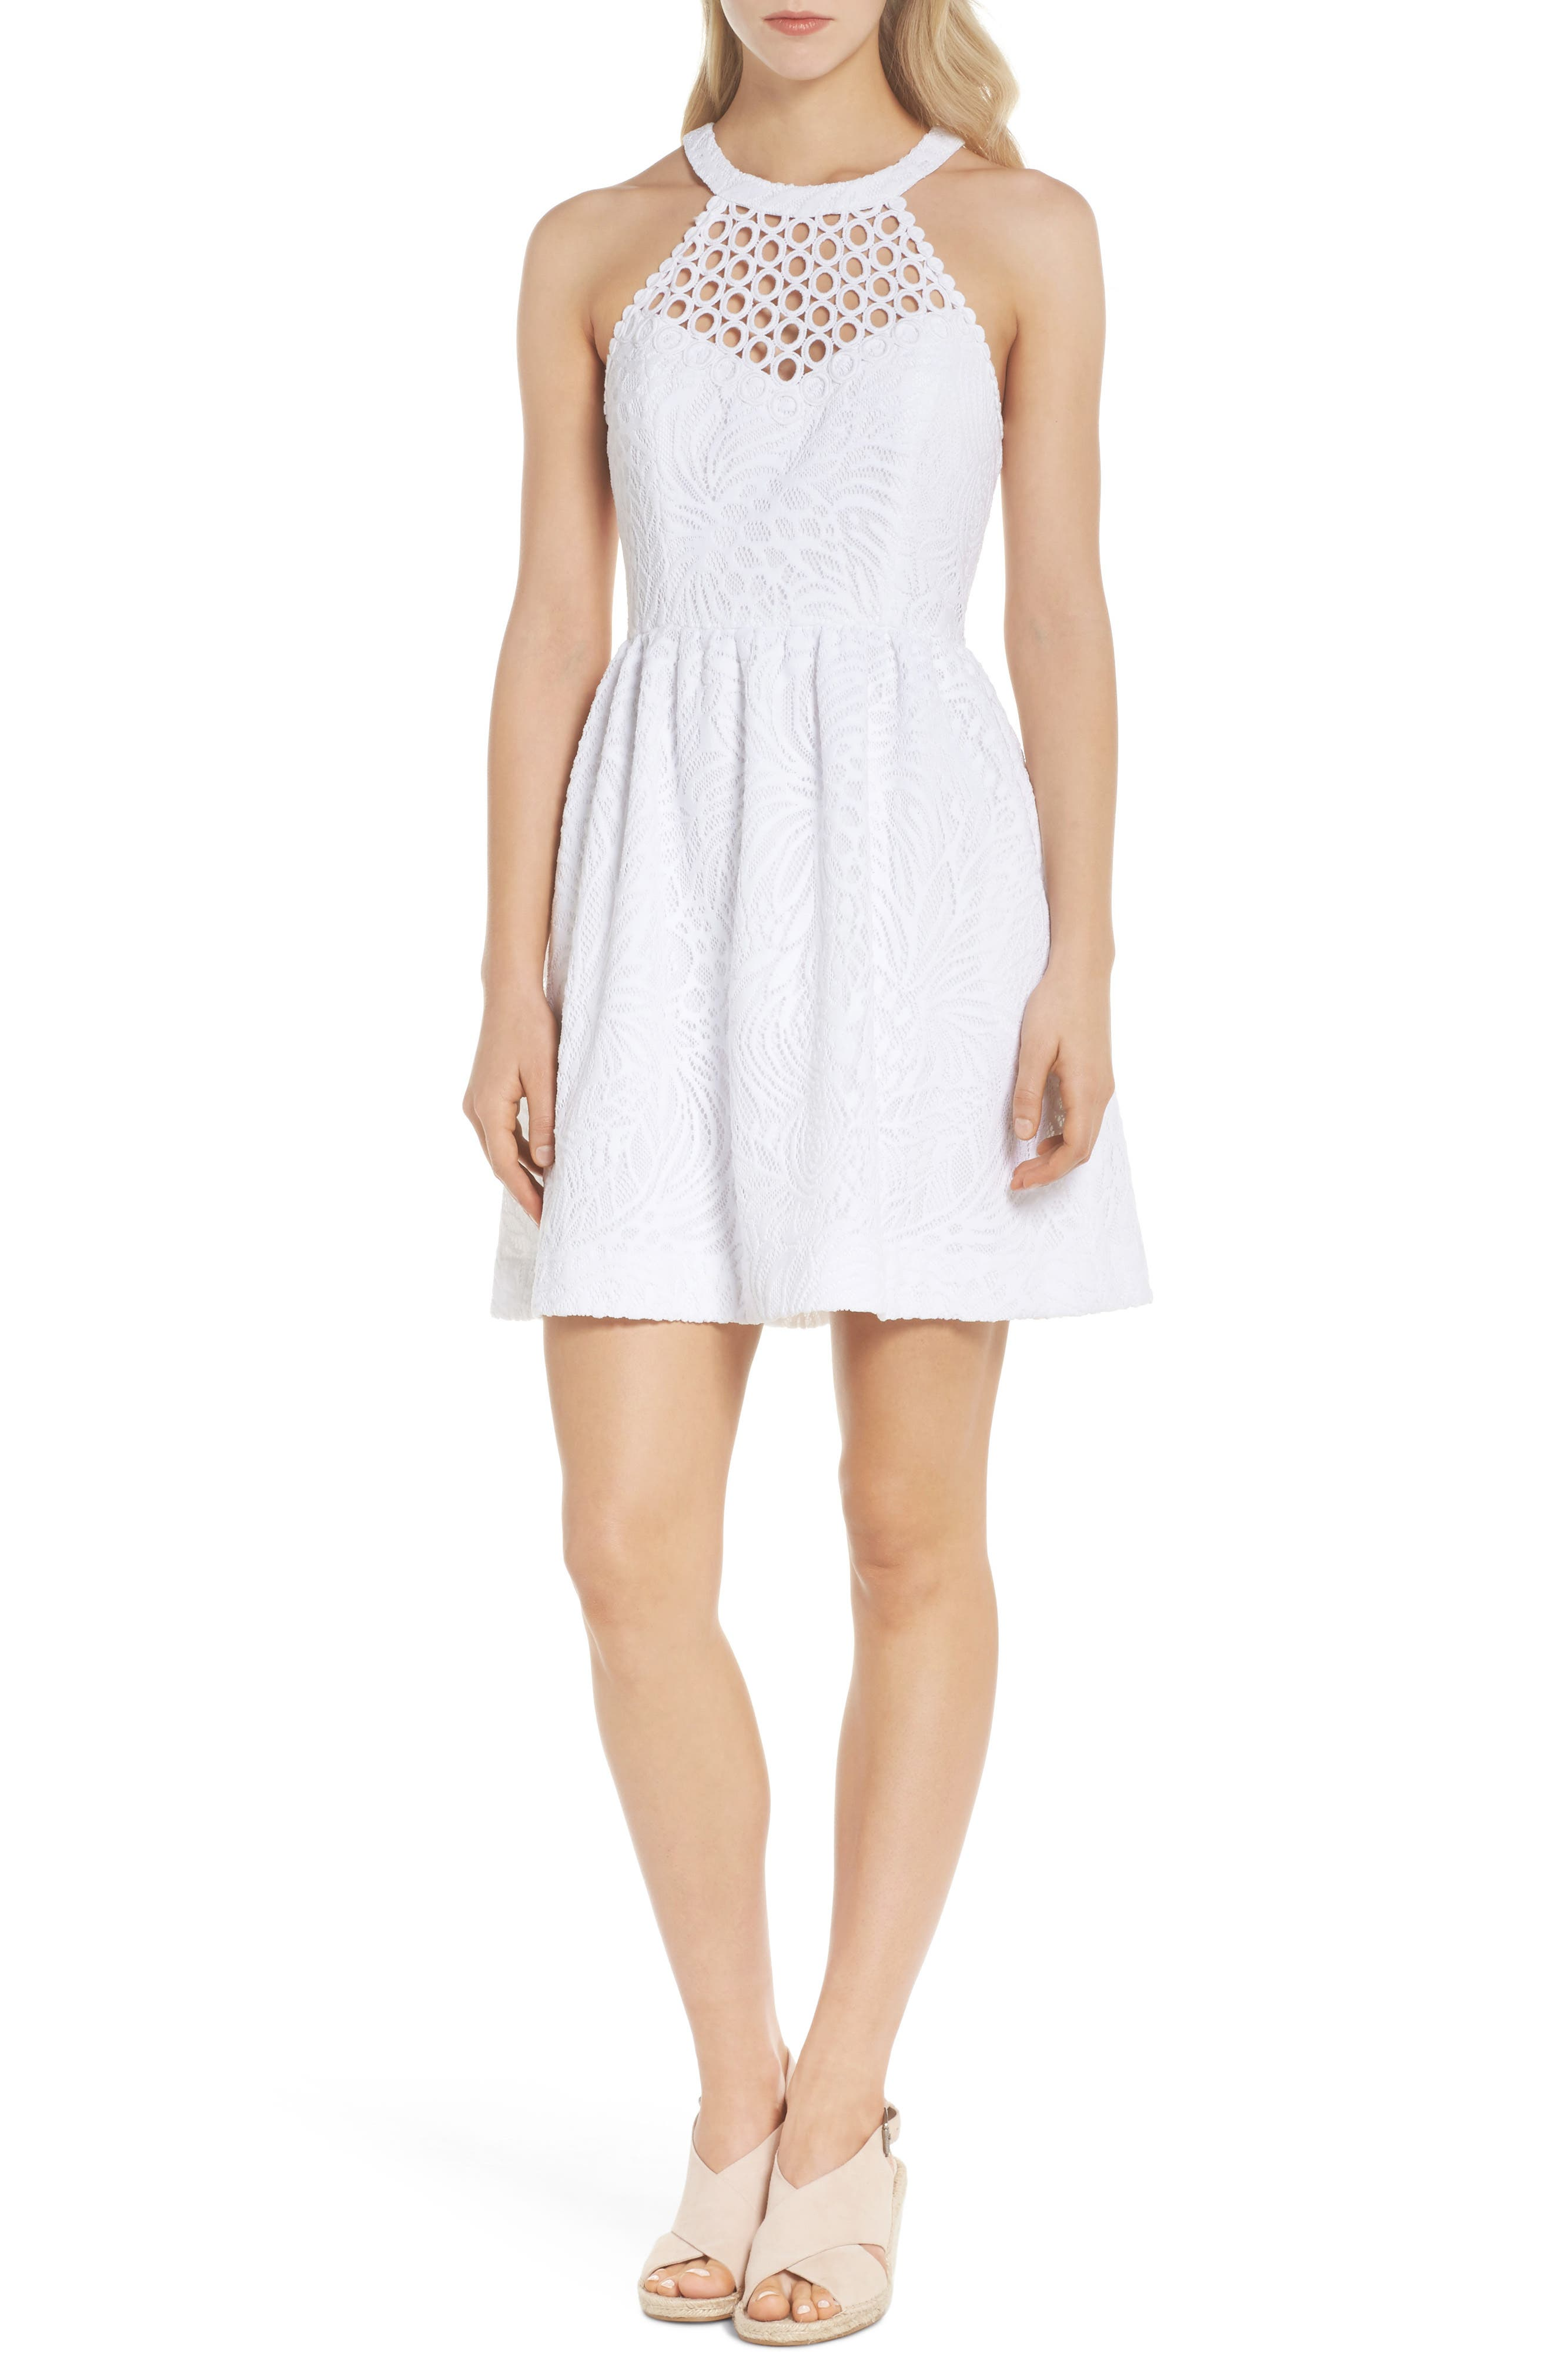 Kinley Halter Dress,                         Main,                         color, RESORT WHITE TROPICAL LACE